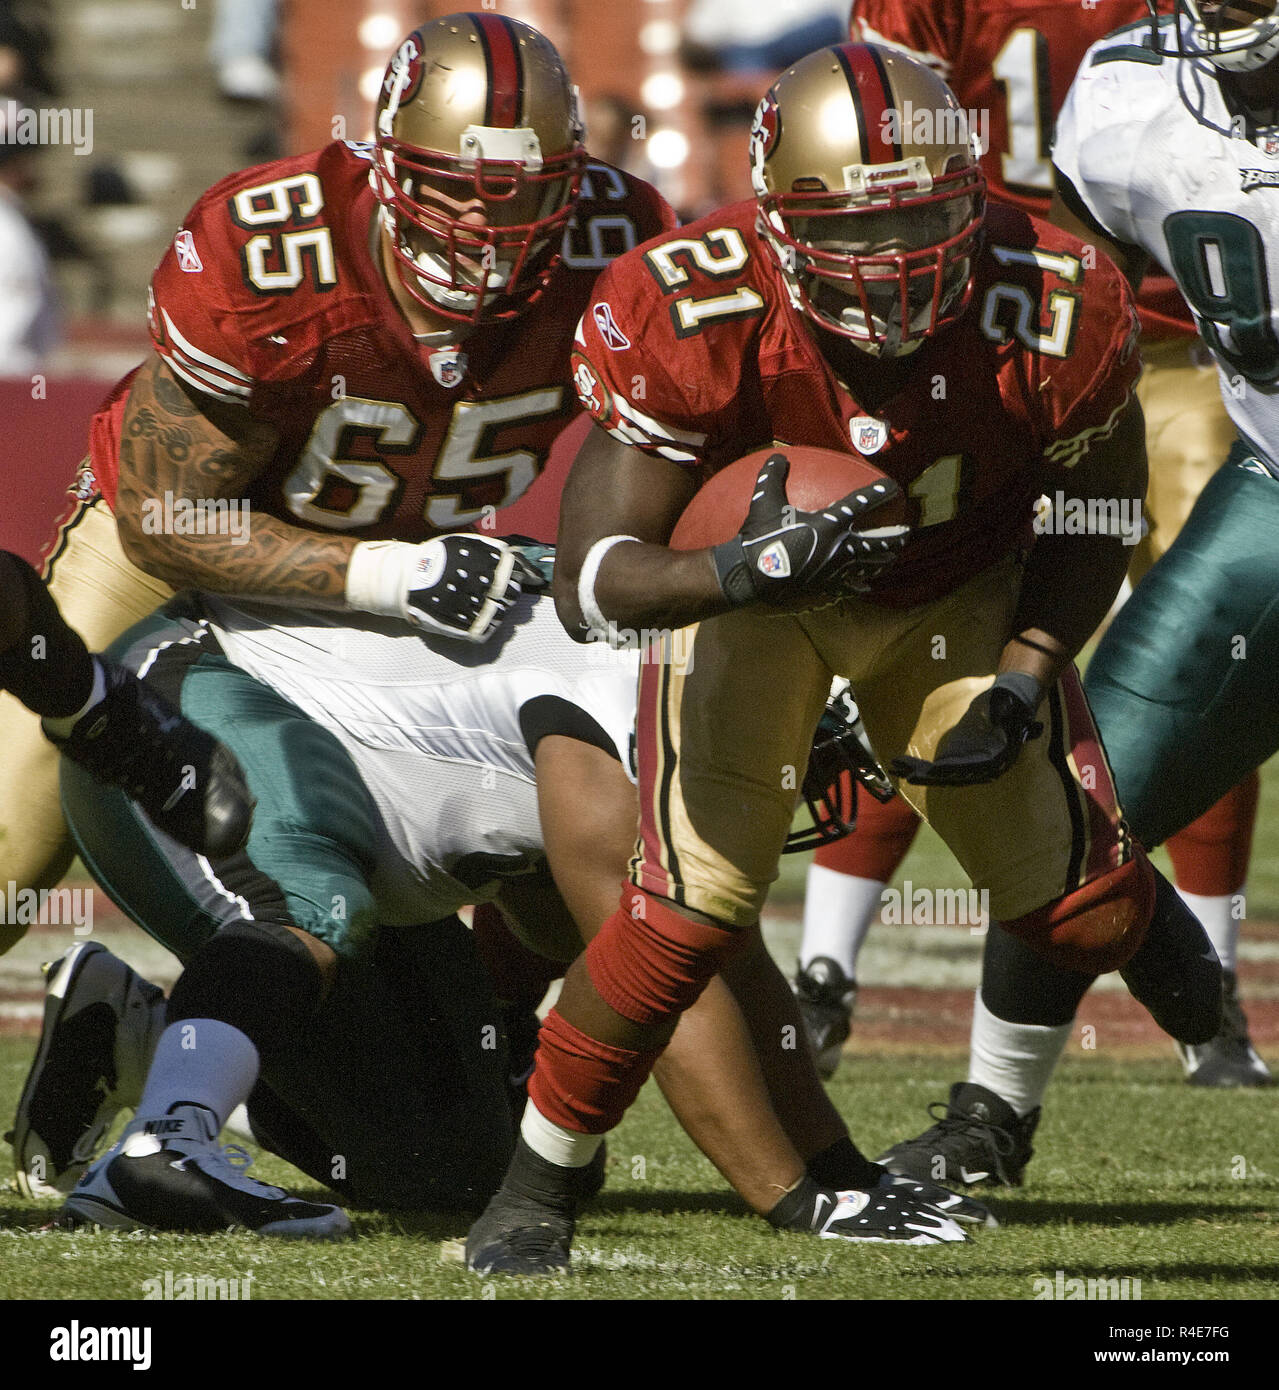 San Francisco, California, USA. 12th Oct, 2008. San Francisco 49ers running back Frank Gore #21 make yards with offensive tackle Barry Sims #65 help on Sunday, October 12, 2008 at Candlestick Park, San Francisco, California. Eagles defeated the 49ers 40-26. Credit: Al Golub/ZUMA Wire/Alamy Live News - Stock Image